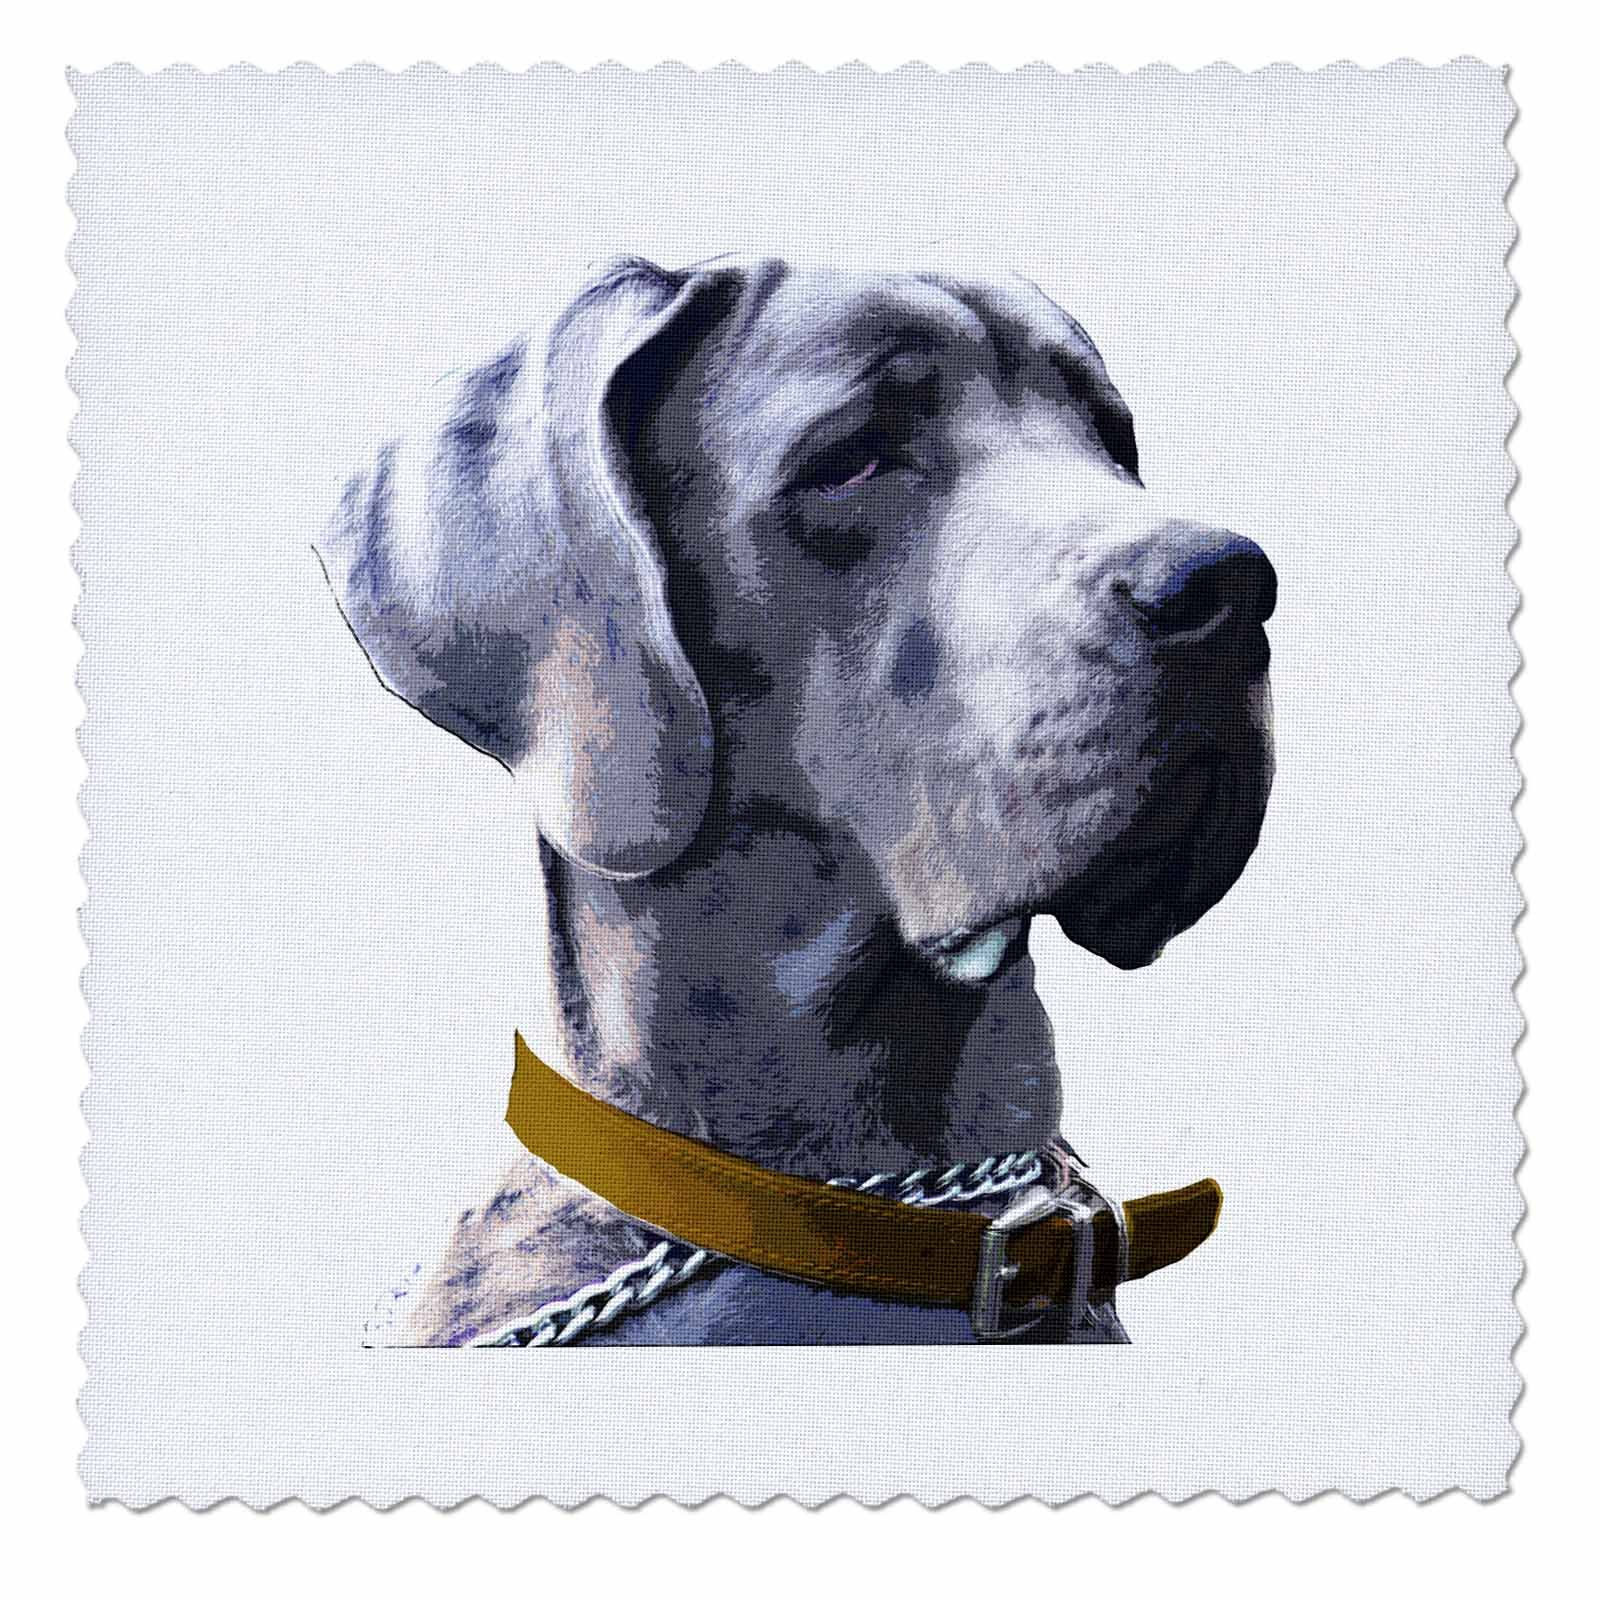 3dRose Sven Herkenrath Animal - A Funny Great Dane Dog With a Serious Look on White Background - 22x22 inch quilt square (qs_280399_9)